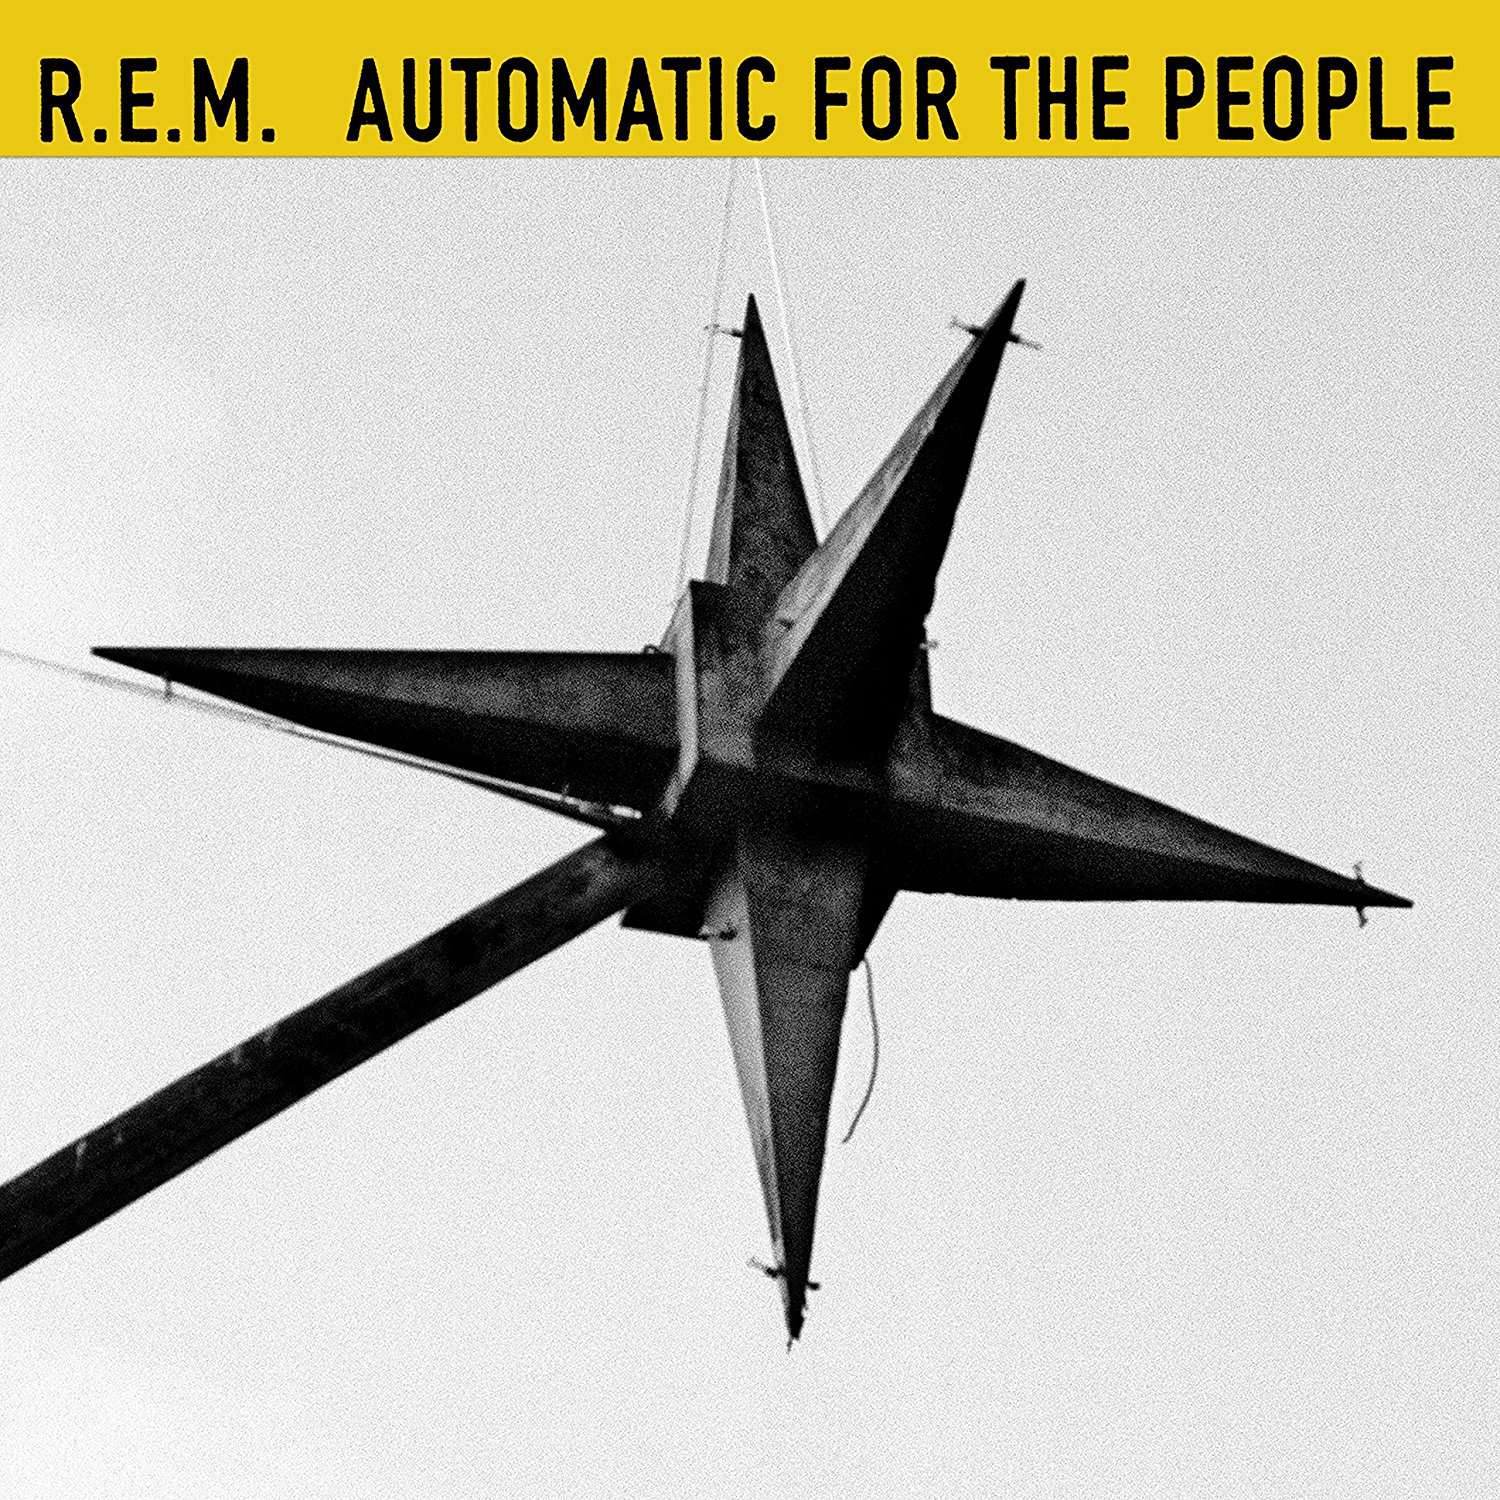 Automatic For The People - Limited 25th Anniversary Deluxe Edition (3CD + Blu-ray A/V)